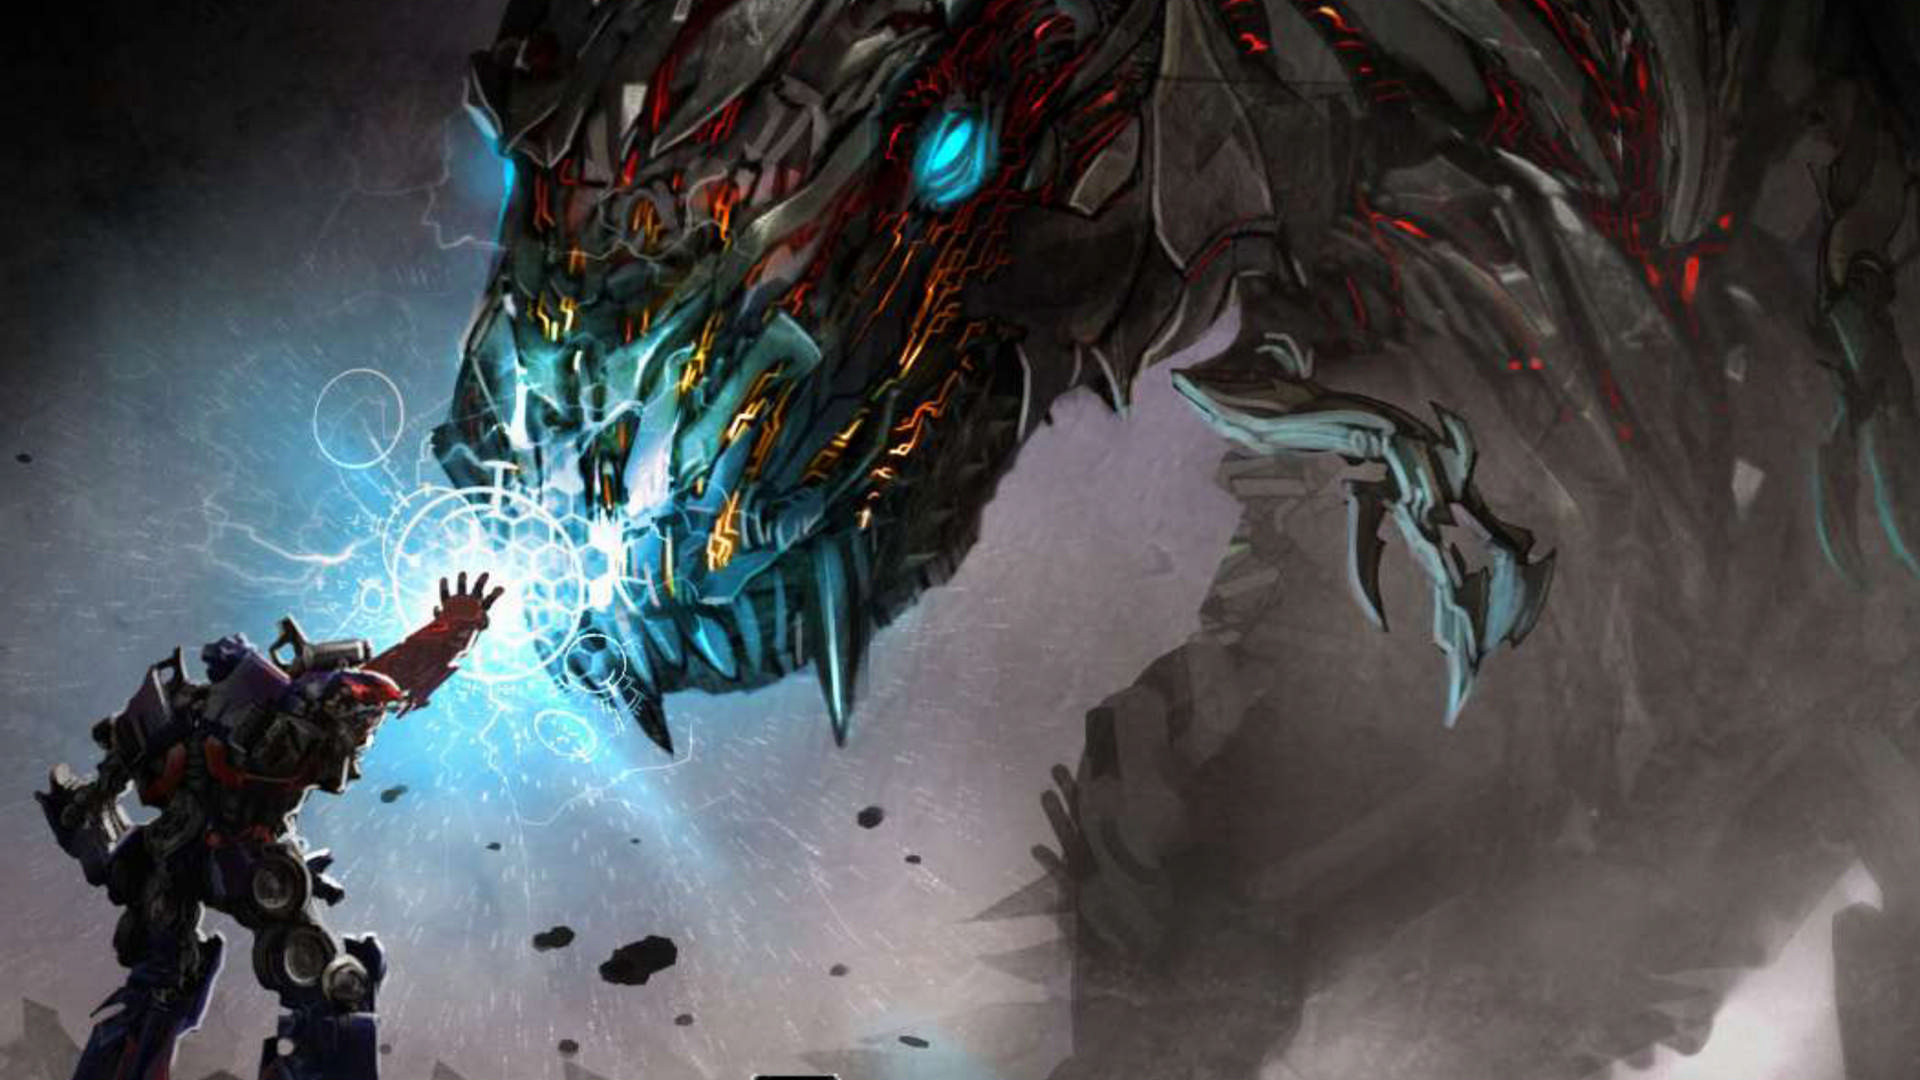 transformers images transformers: age of extinction - concept arts